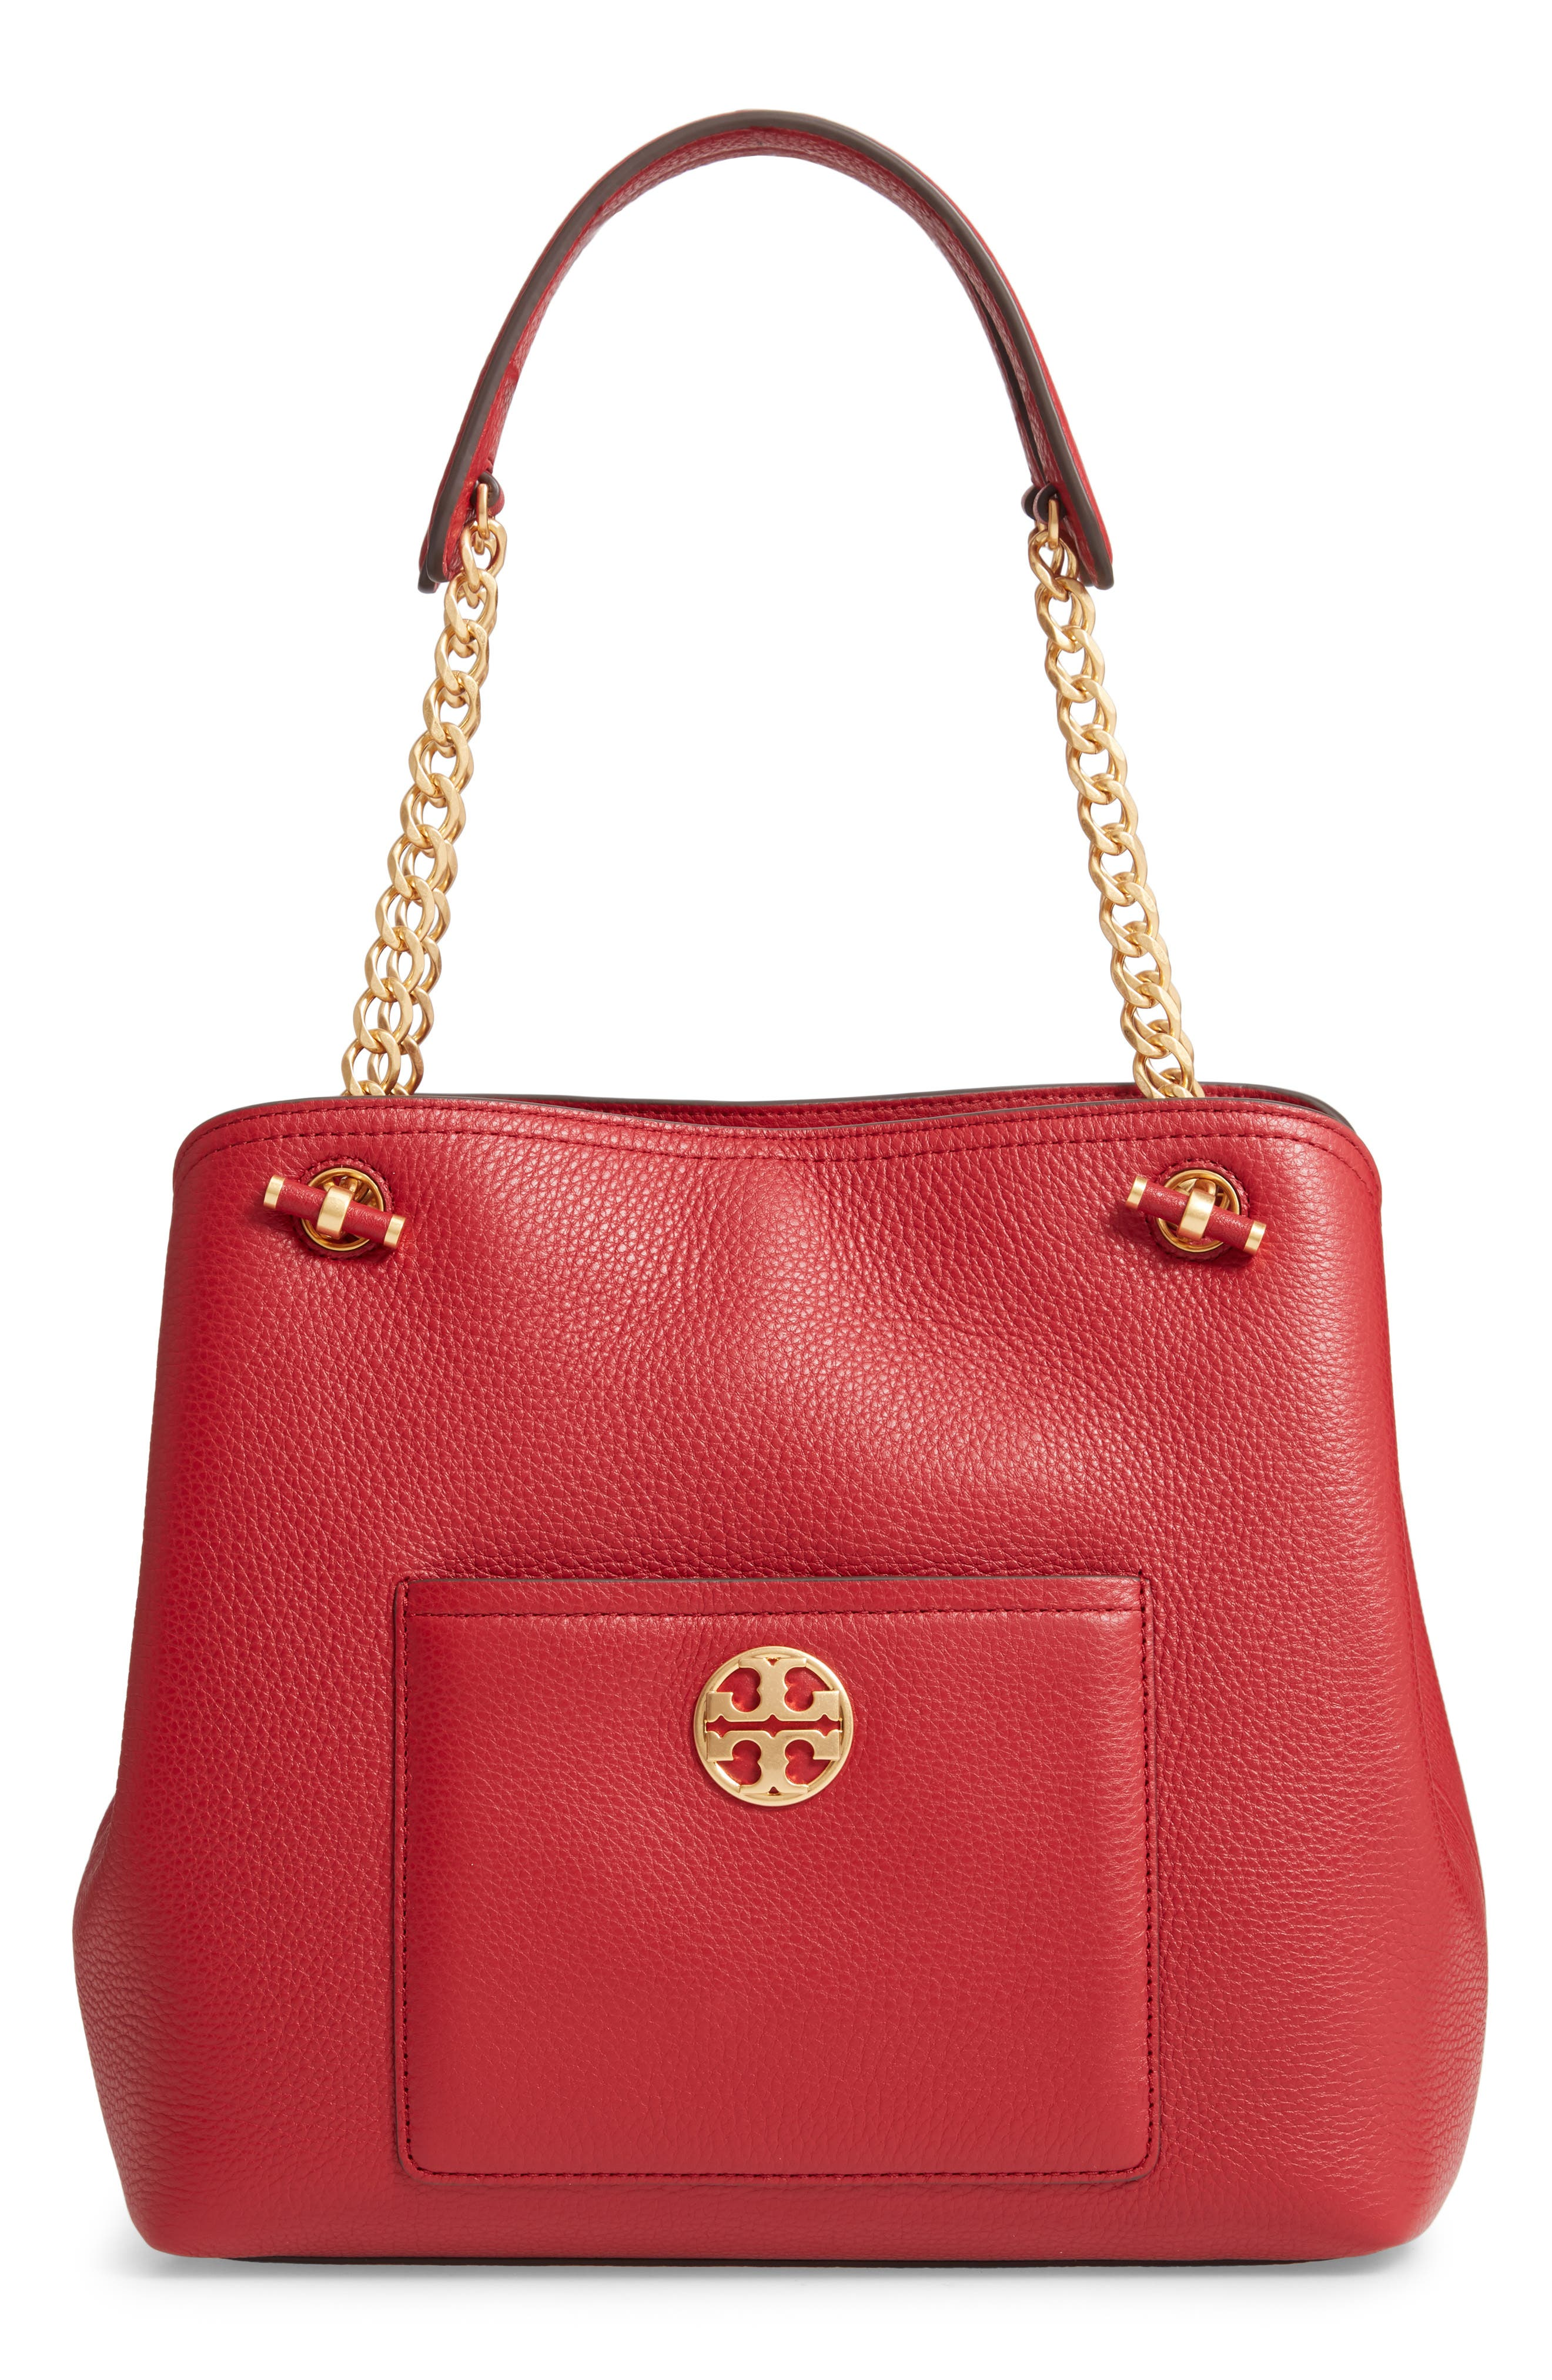 Chelsea Slouchy Leather Shoulder Tote Bag in Redstone